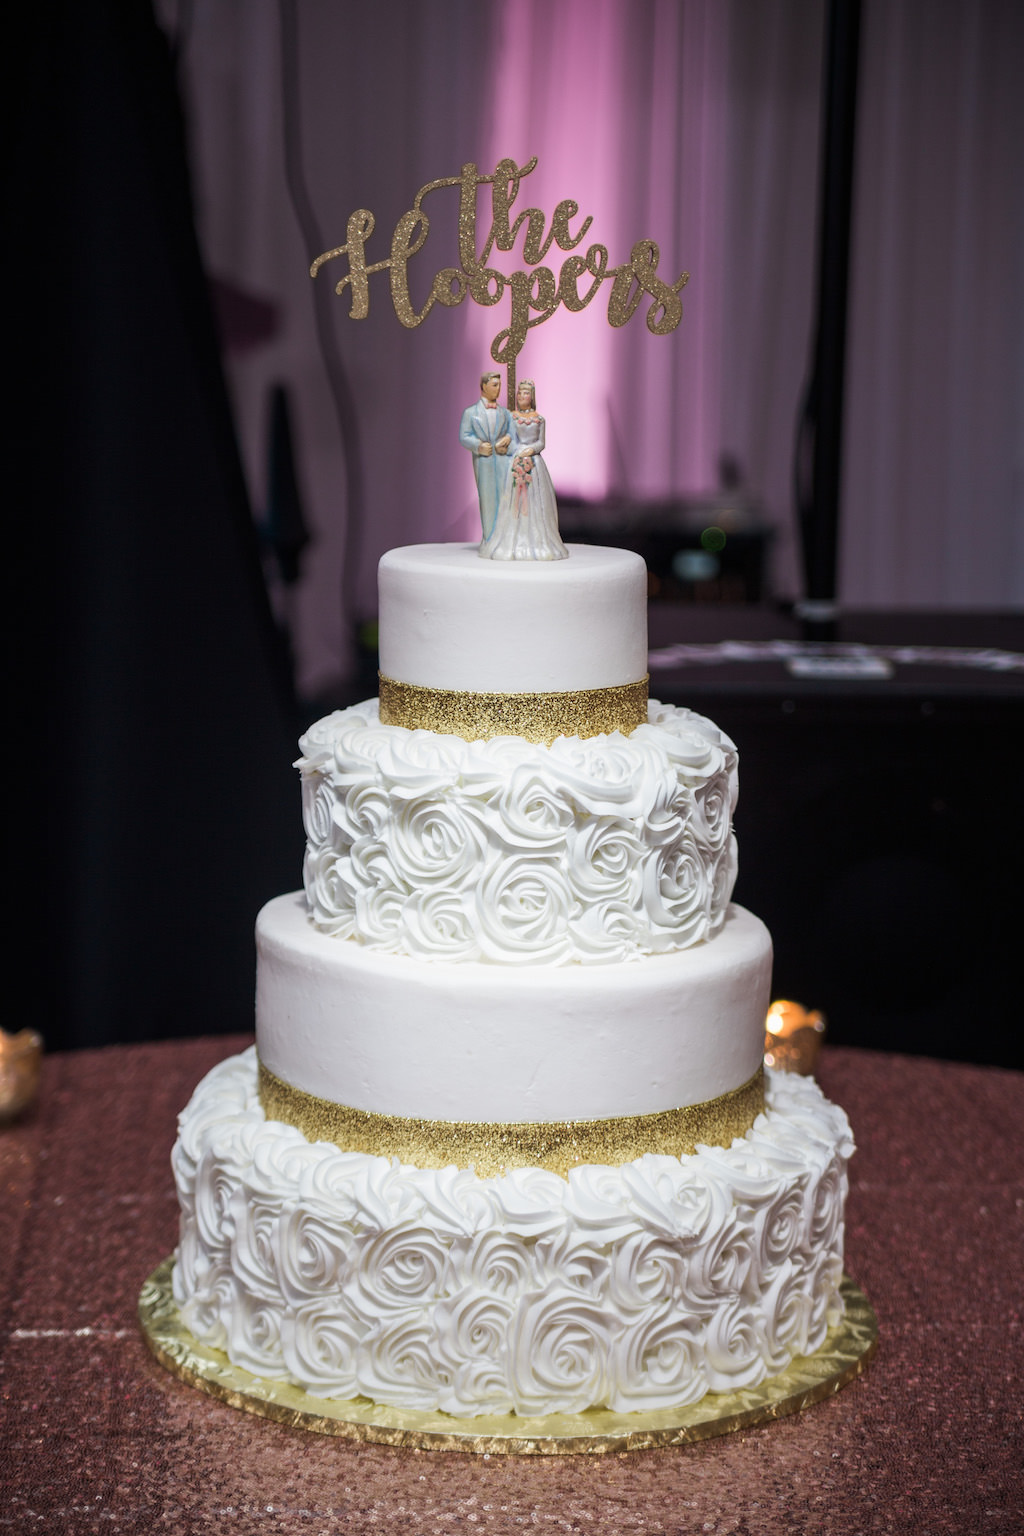 Four Tier Round White with Gold Glitter and Rose Icing Wedding Cake on Flat Gold Cake Stand and Rose Gold Glitter Linen, with Custom Figurine Cake Topper and Gold Couple Name